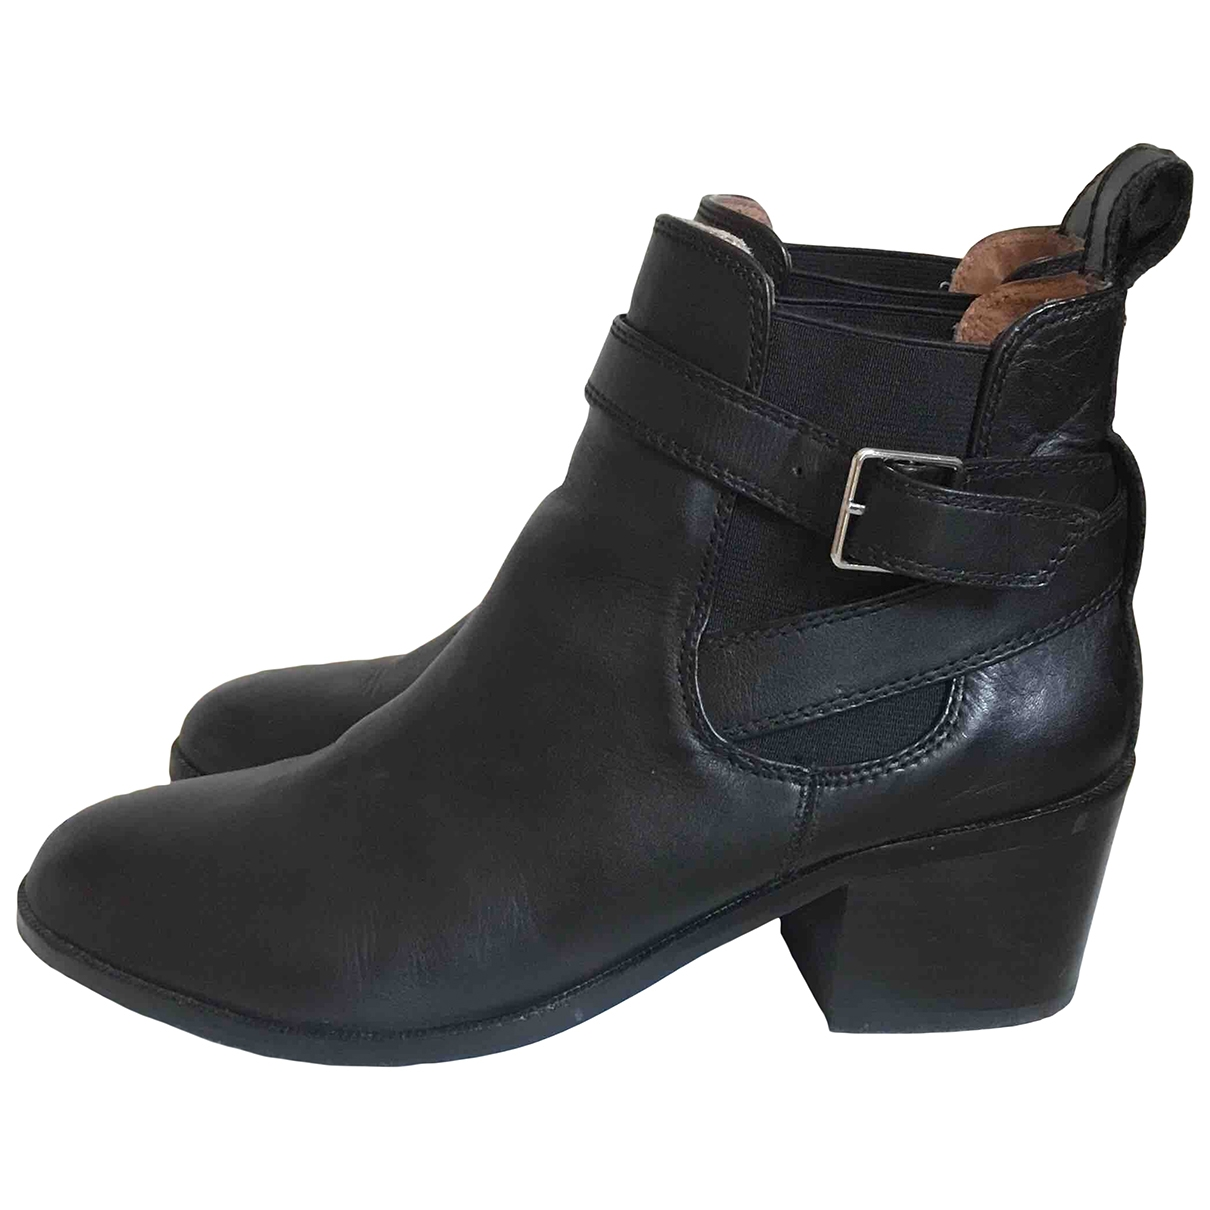 Bimba Y Lola \N Black Leather Ankle boots for Women 38 EU